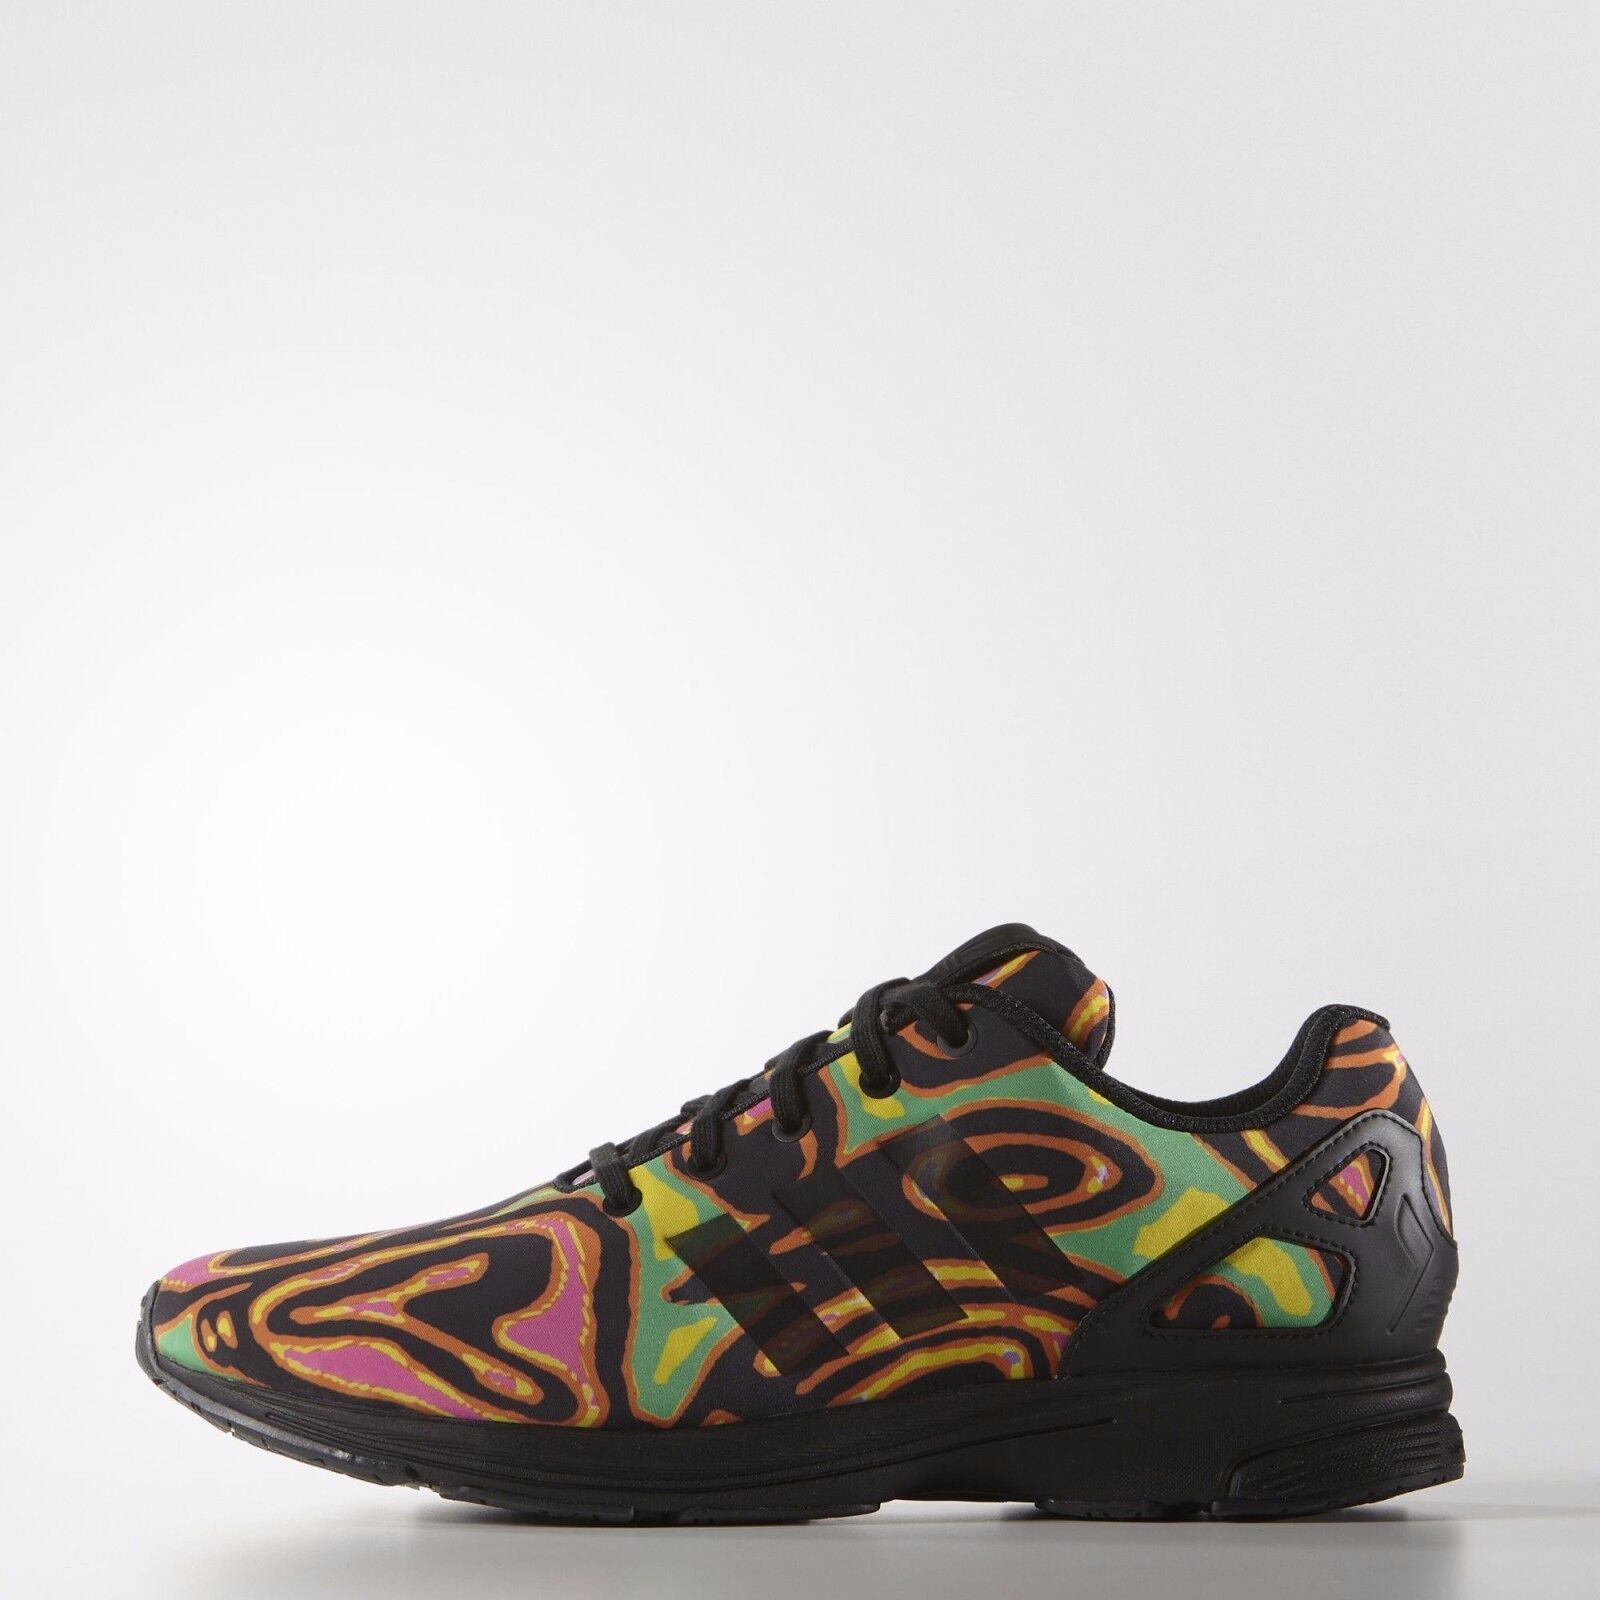 Adidas Originals Jeremy Scott ZX Limited Flux Tech Psychedelic S77841 Limited ZX Edition 994333